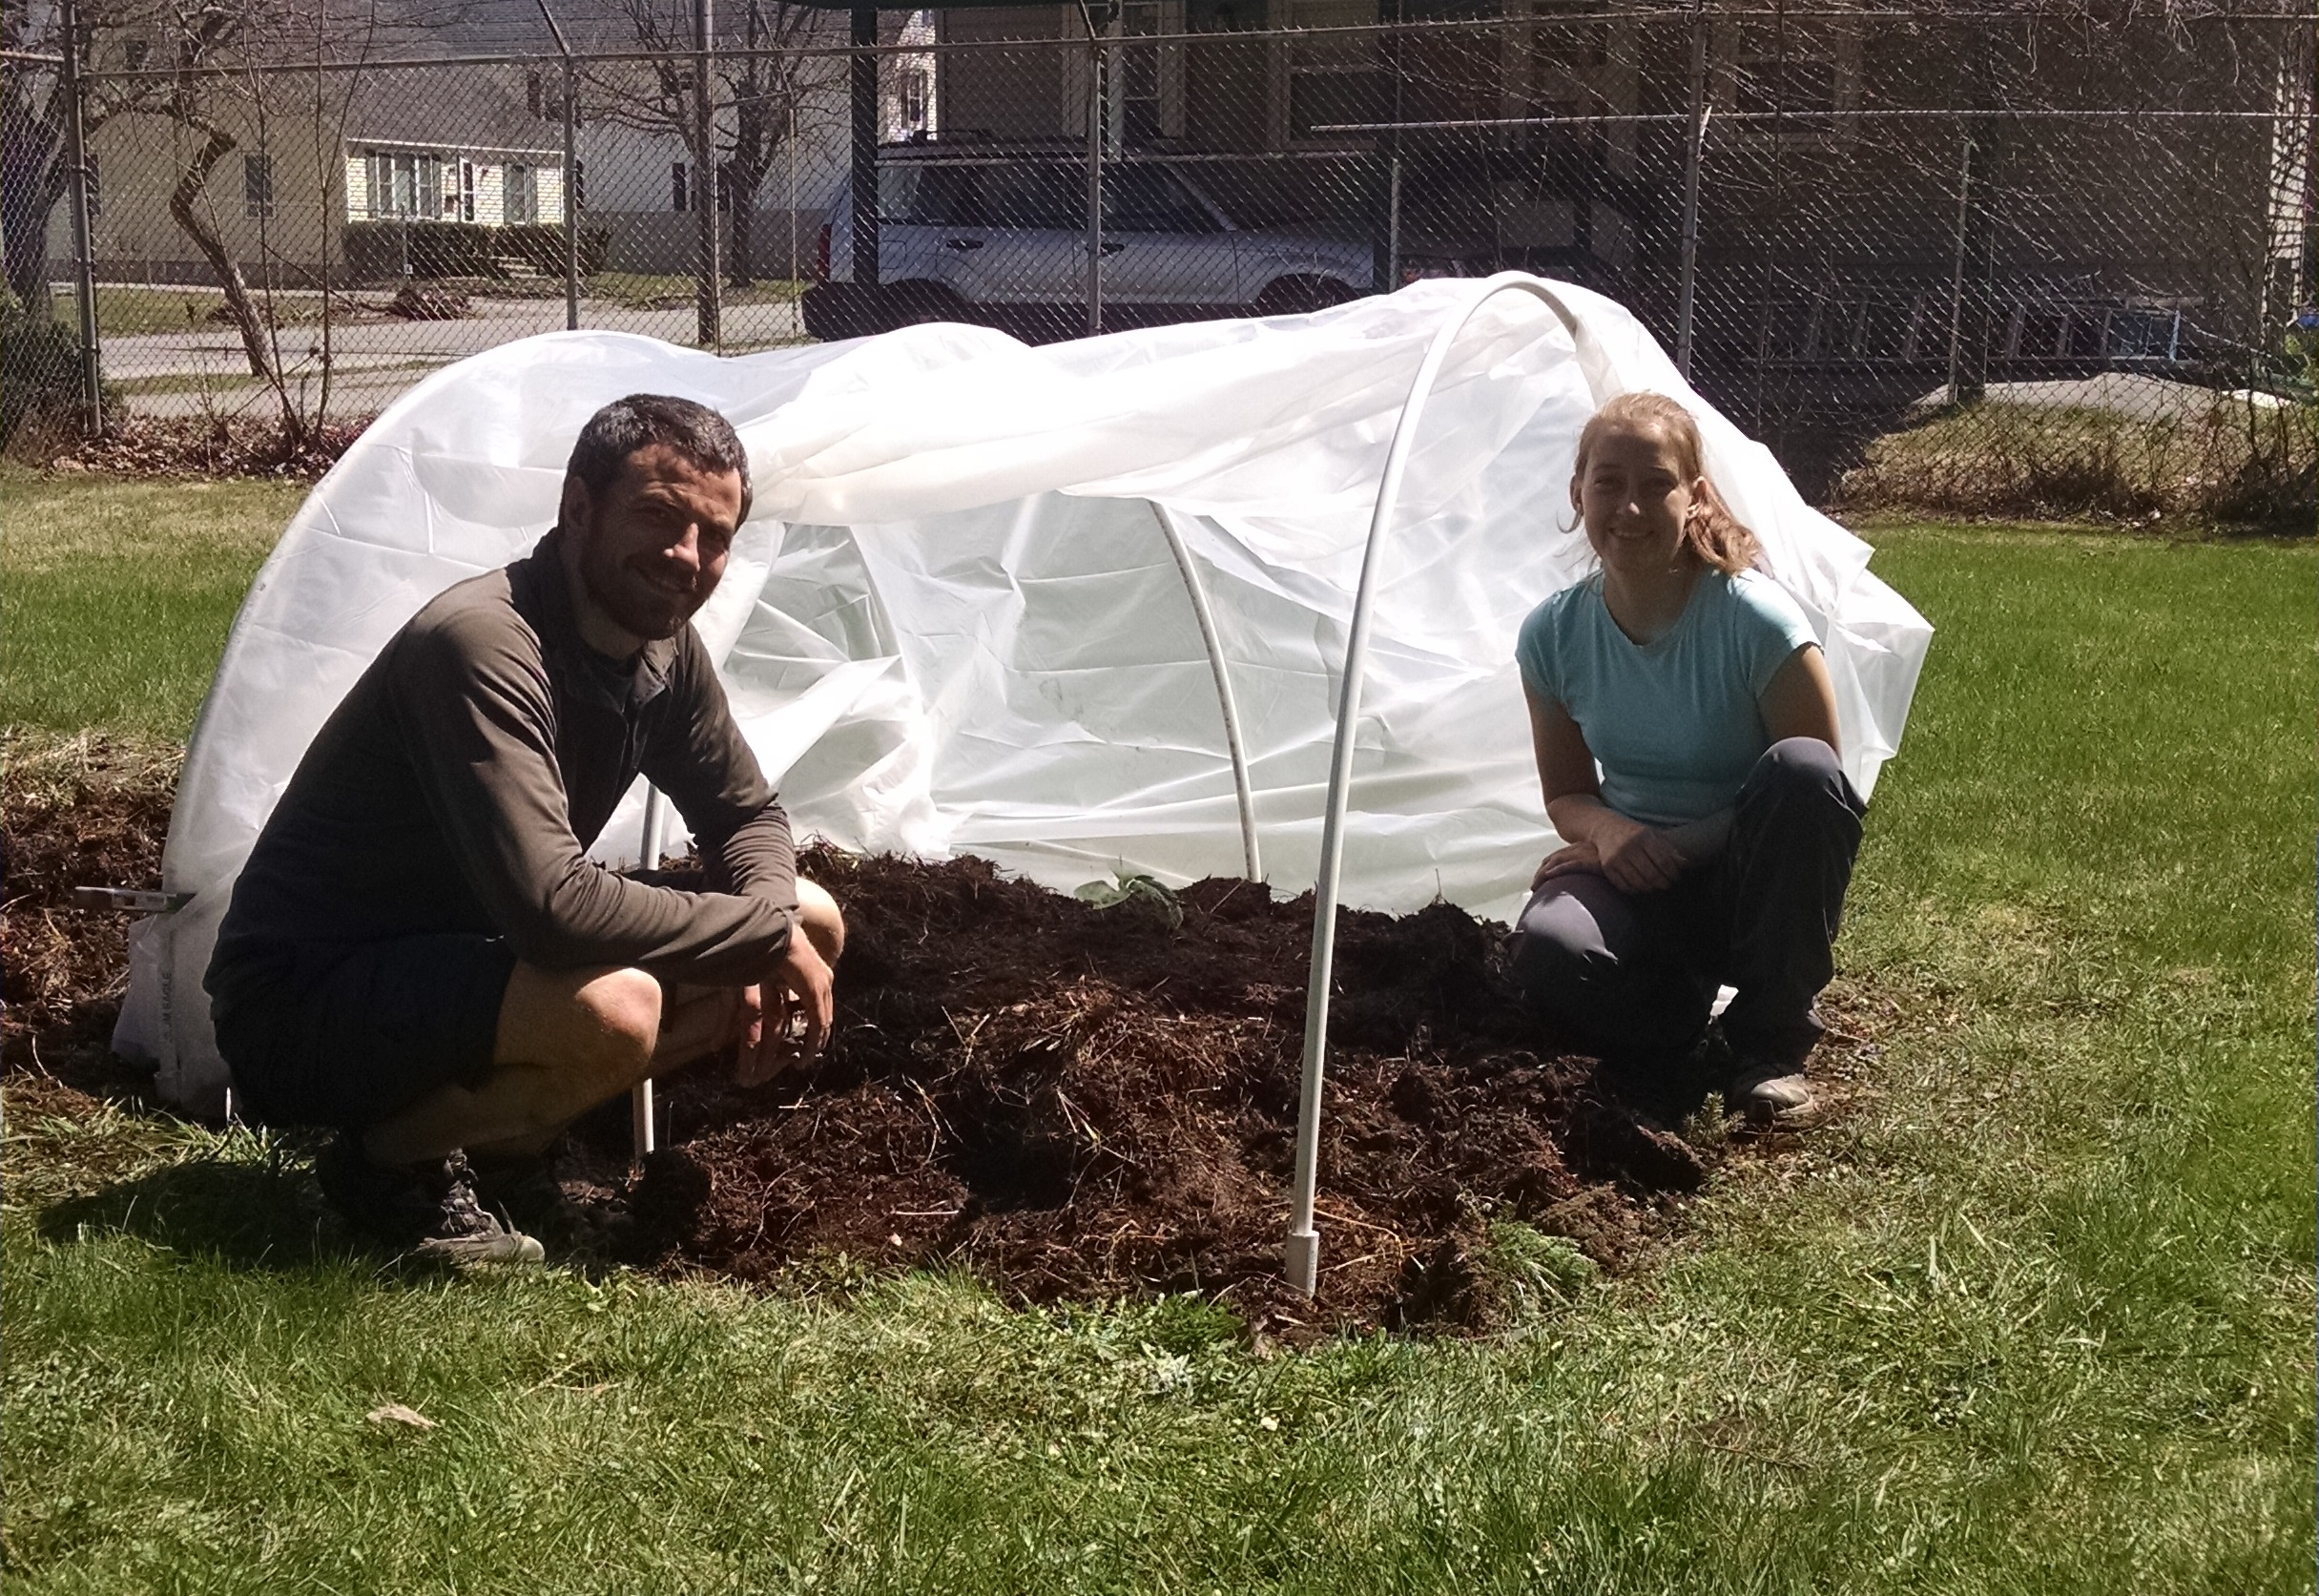 Posing with our seedling and hoop house at the Bangor Community Garden.